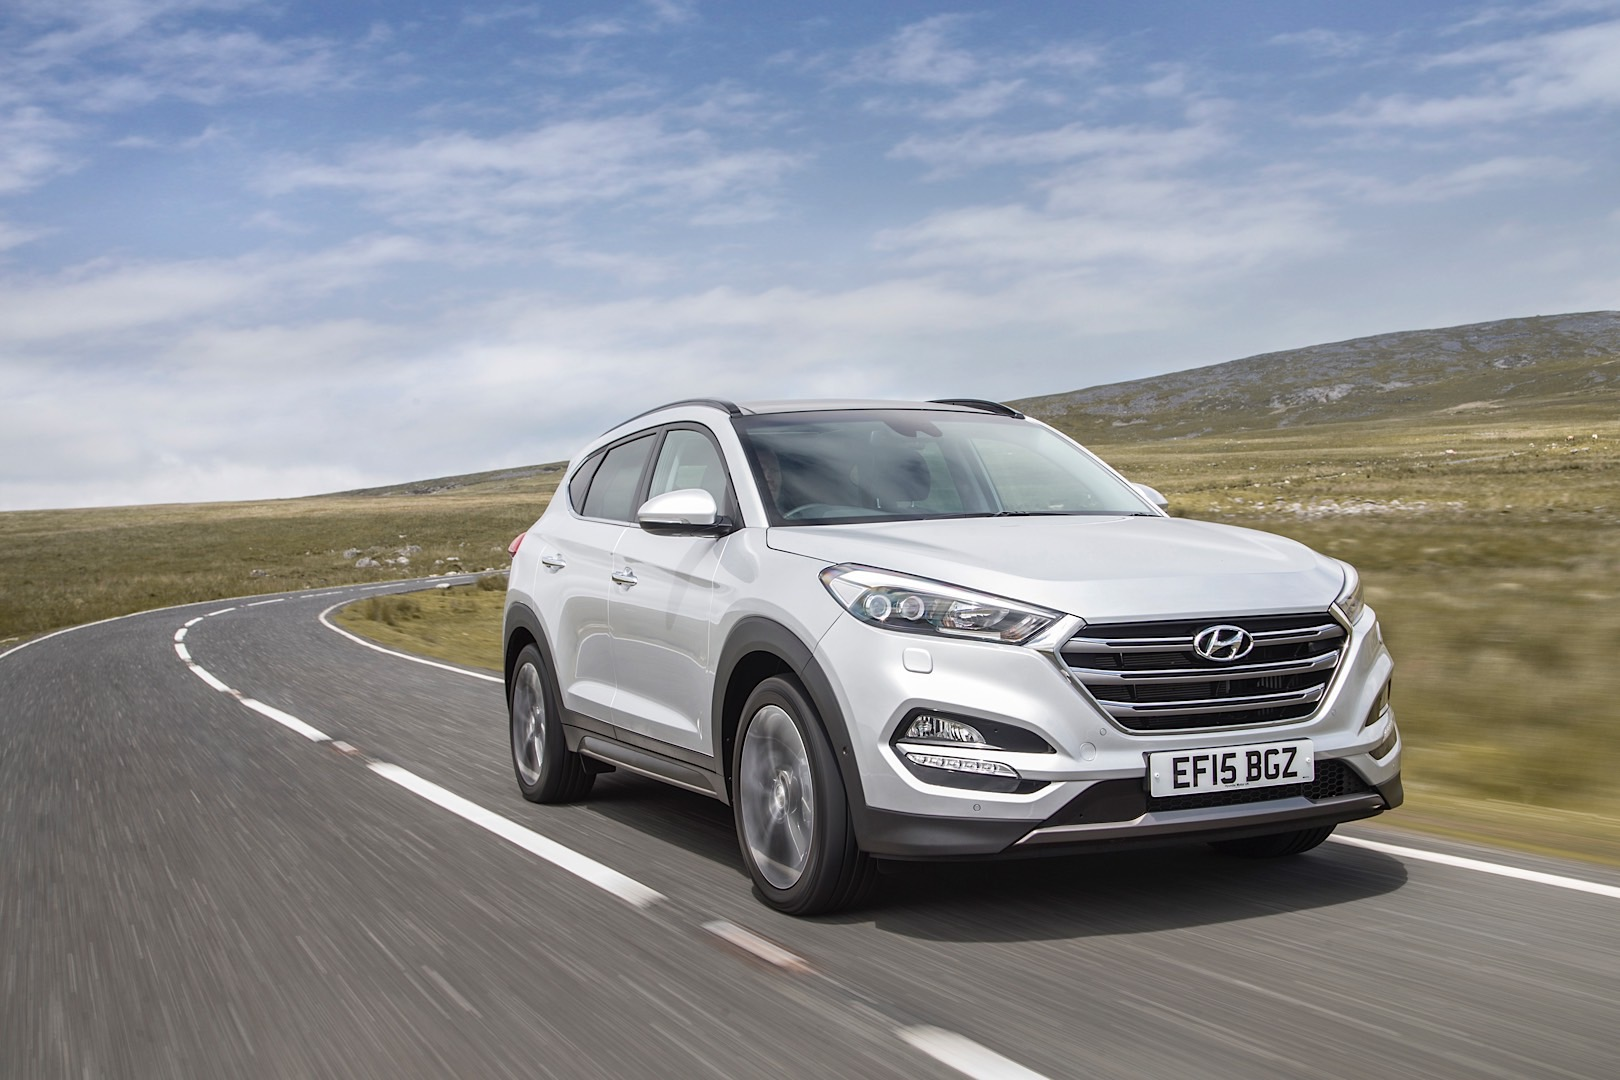 2016 hyundai tucson uk pricing info revealed suv bill starts at 18 695 autoevolution. Black Bedroom Furniture Sets. Home Design Ideas